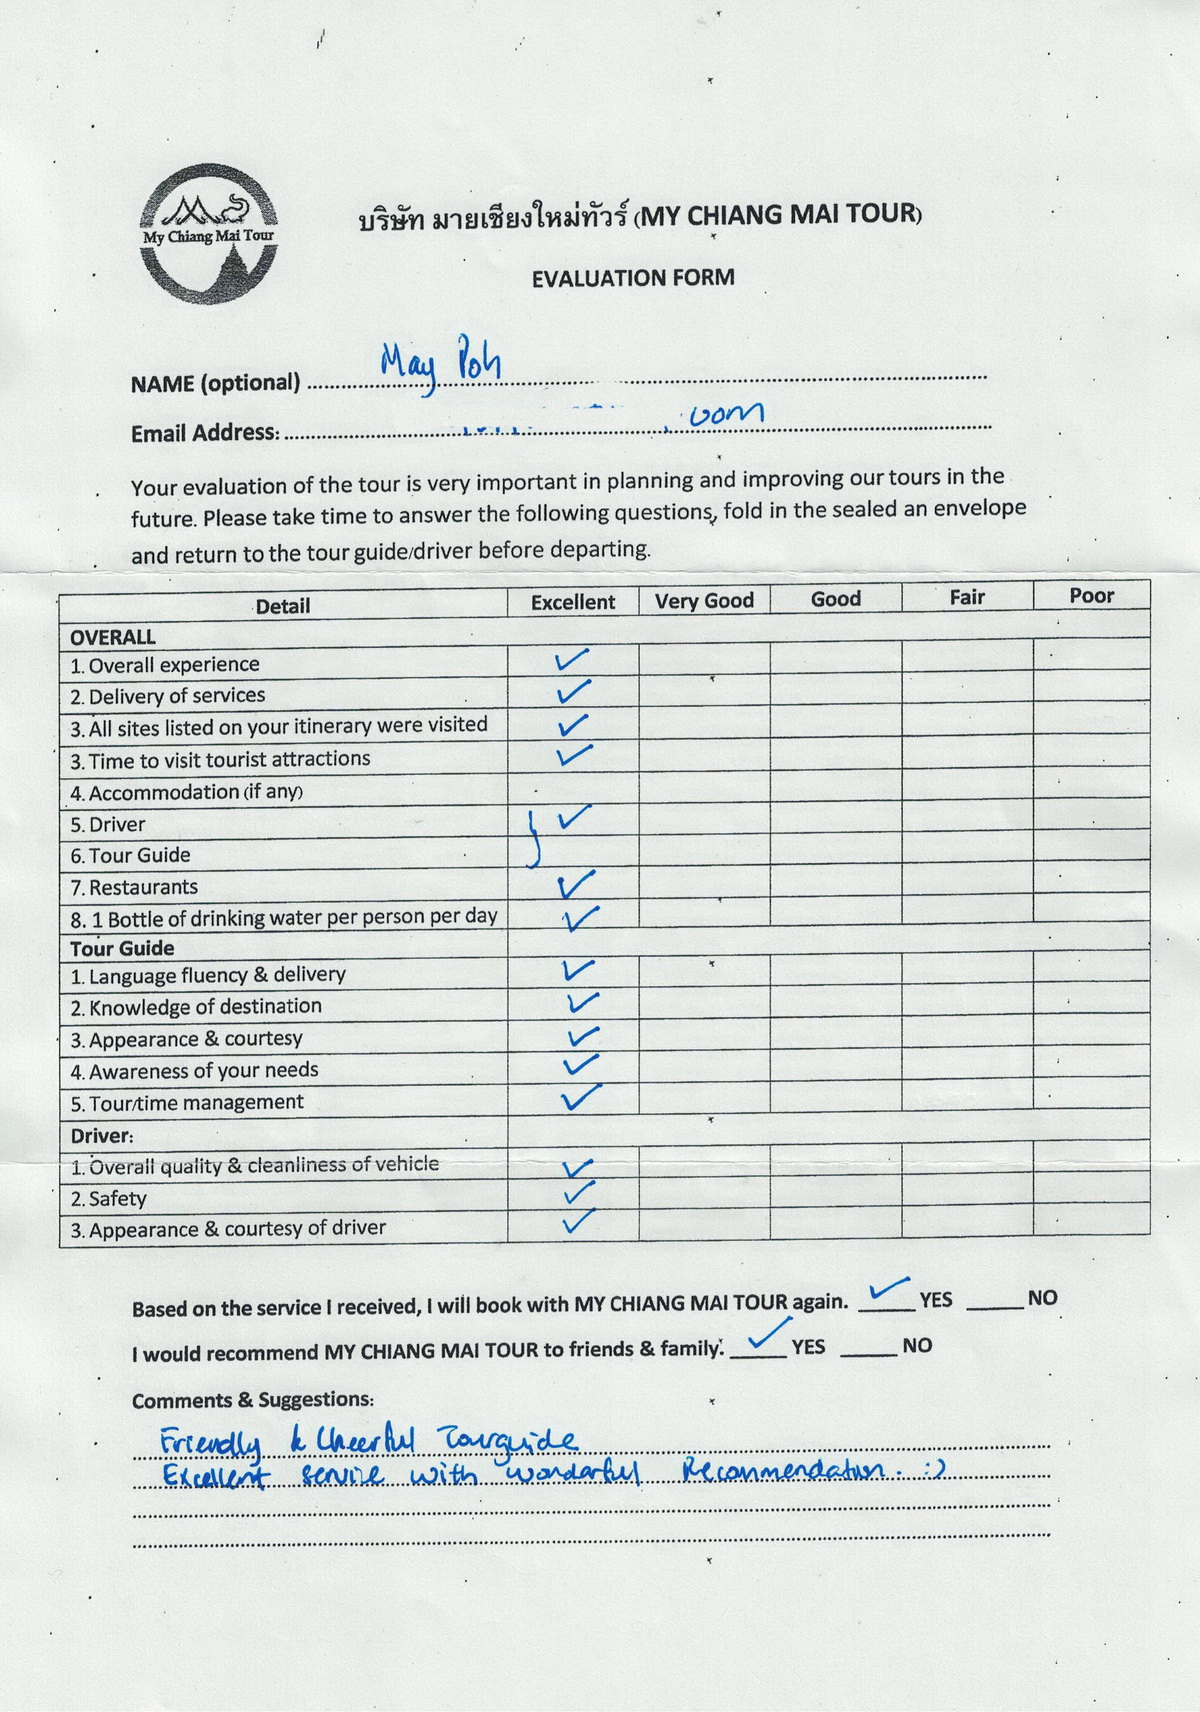 reviews, my chiang mai tour reviews, evaluation form